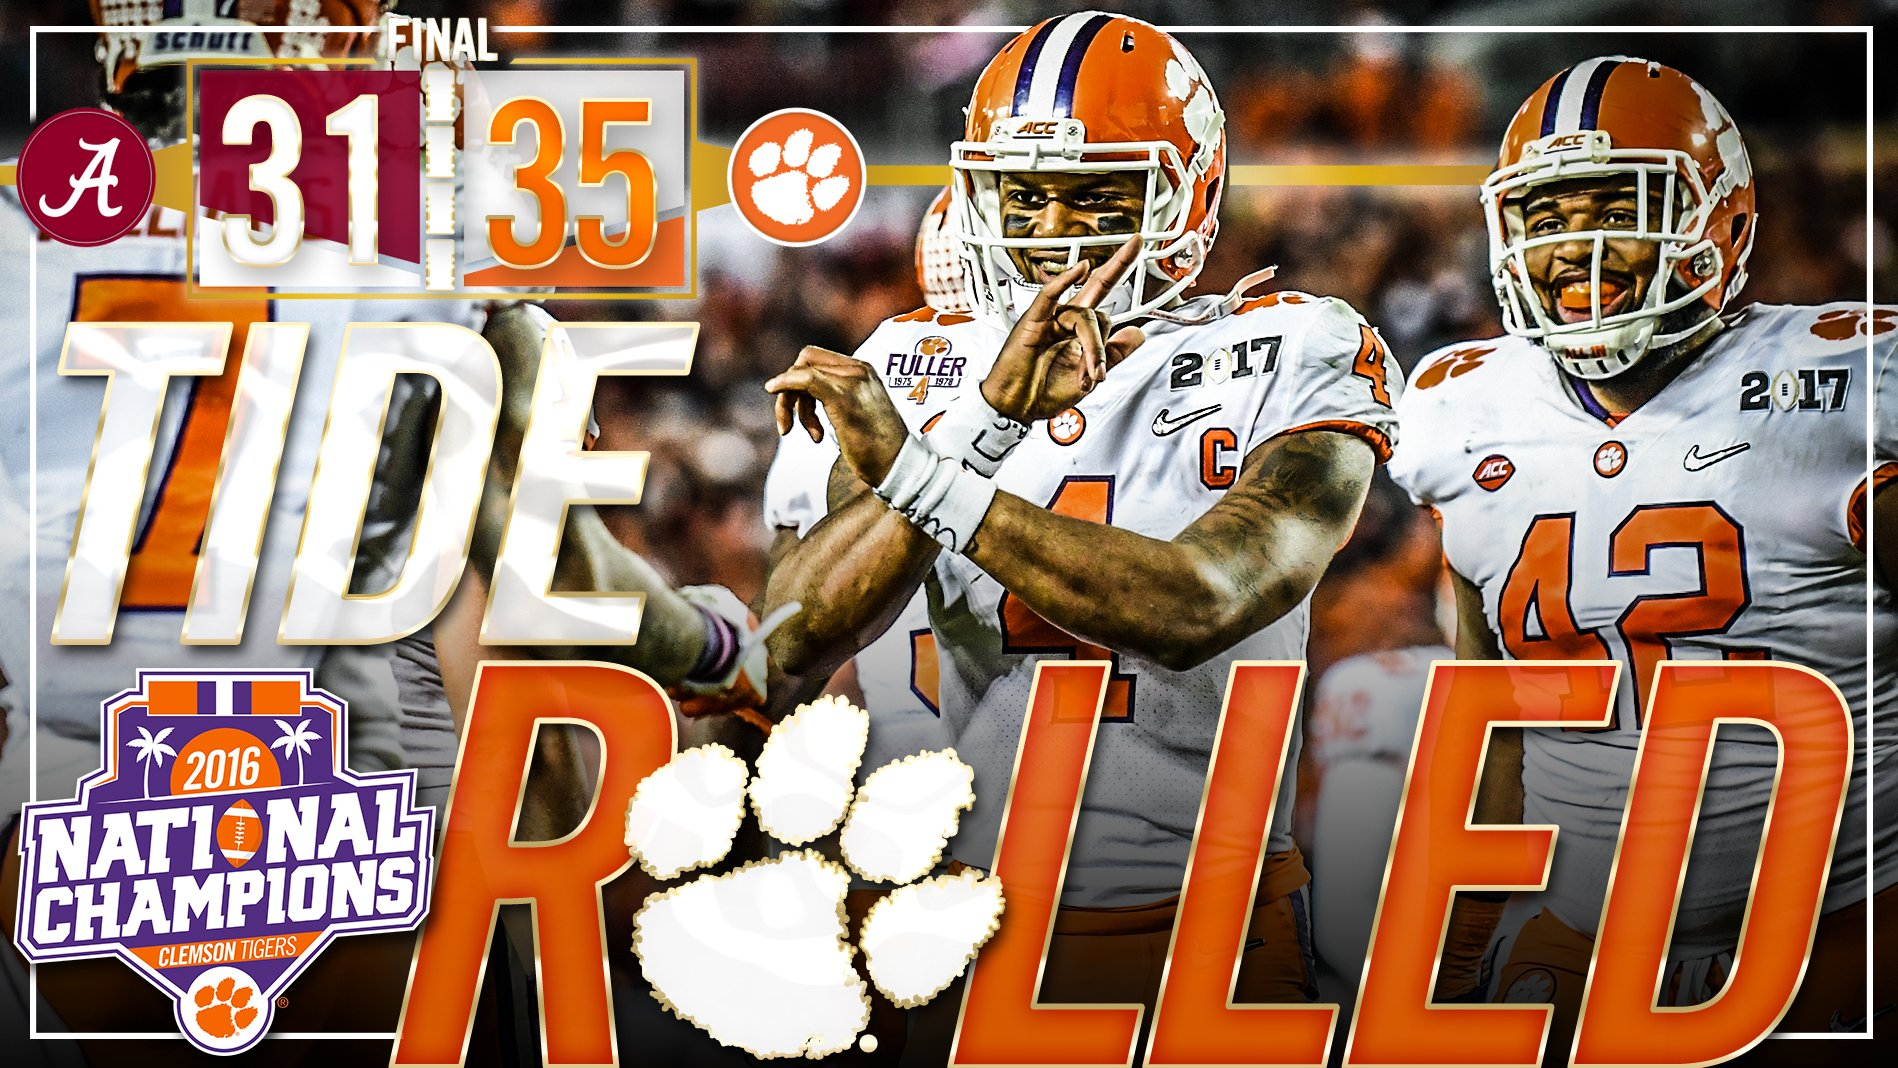 Tide Rolled, 35-31.  The National Championship is coming BACK to #Clemson!   #ALLIN https://t.co/NdzRNl15P3